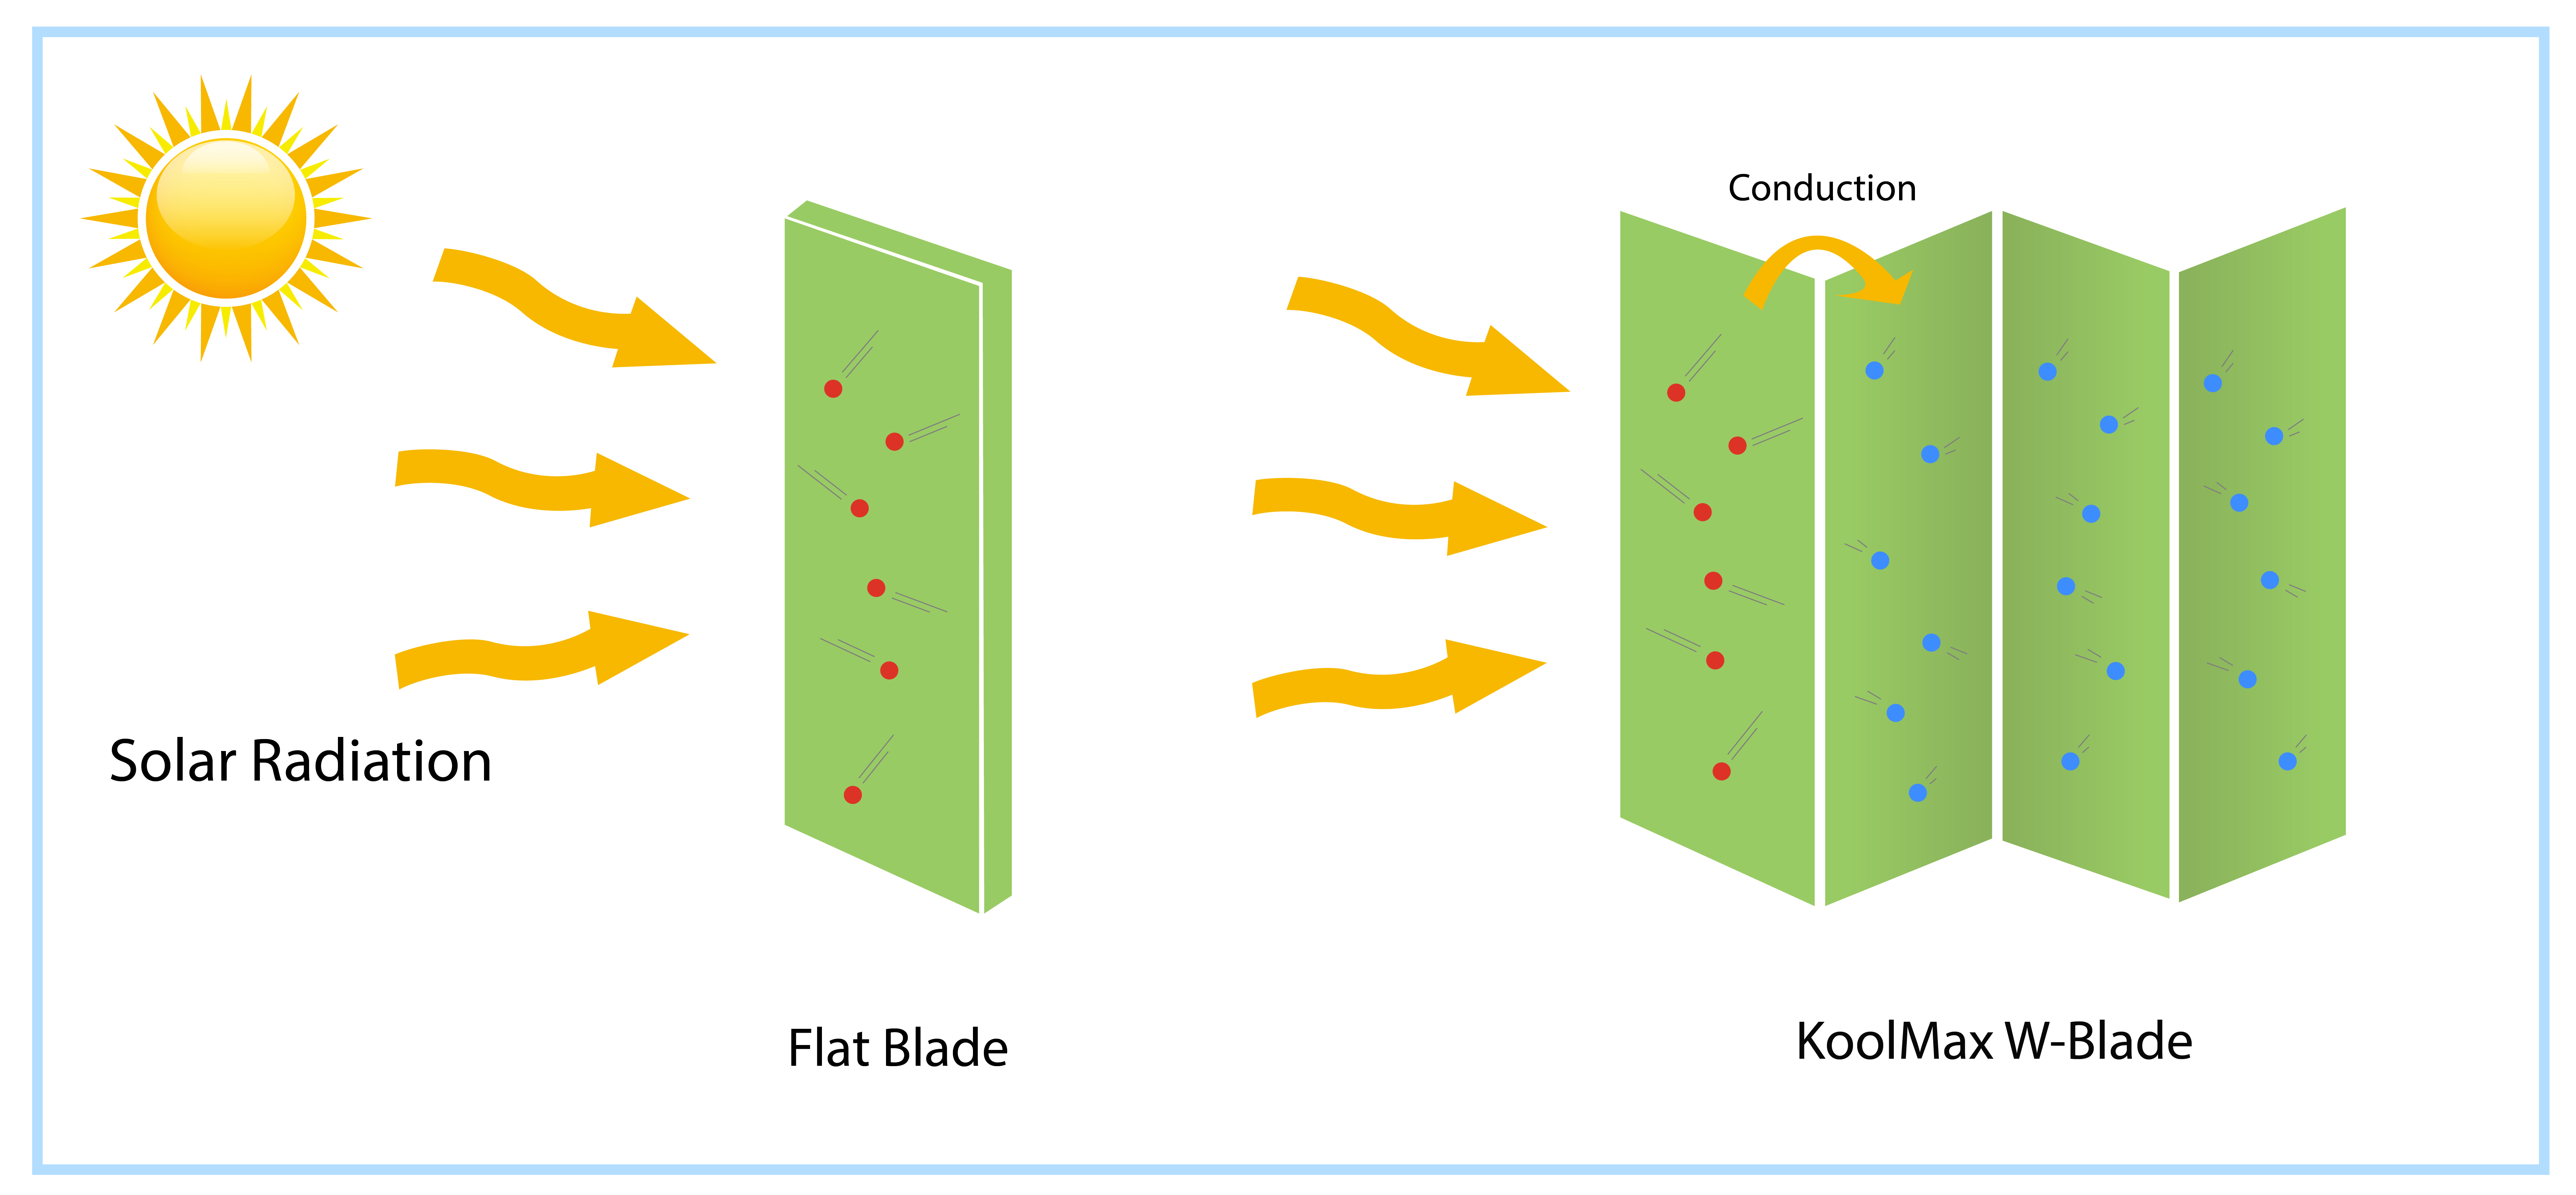 KoolMax technology is based on the kinetic theory of matter and the principle of conduction.